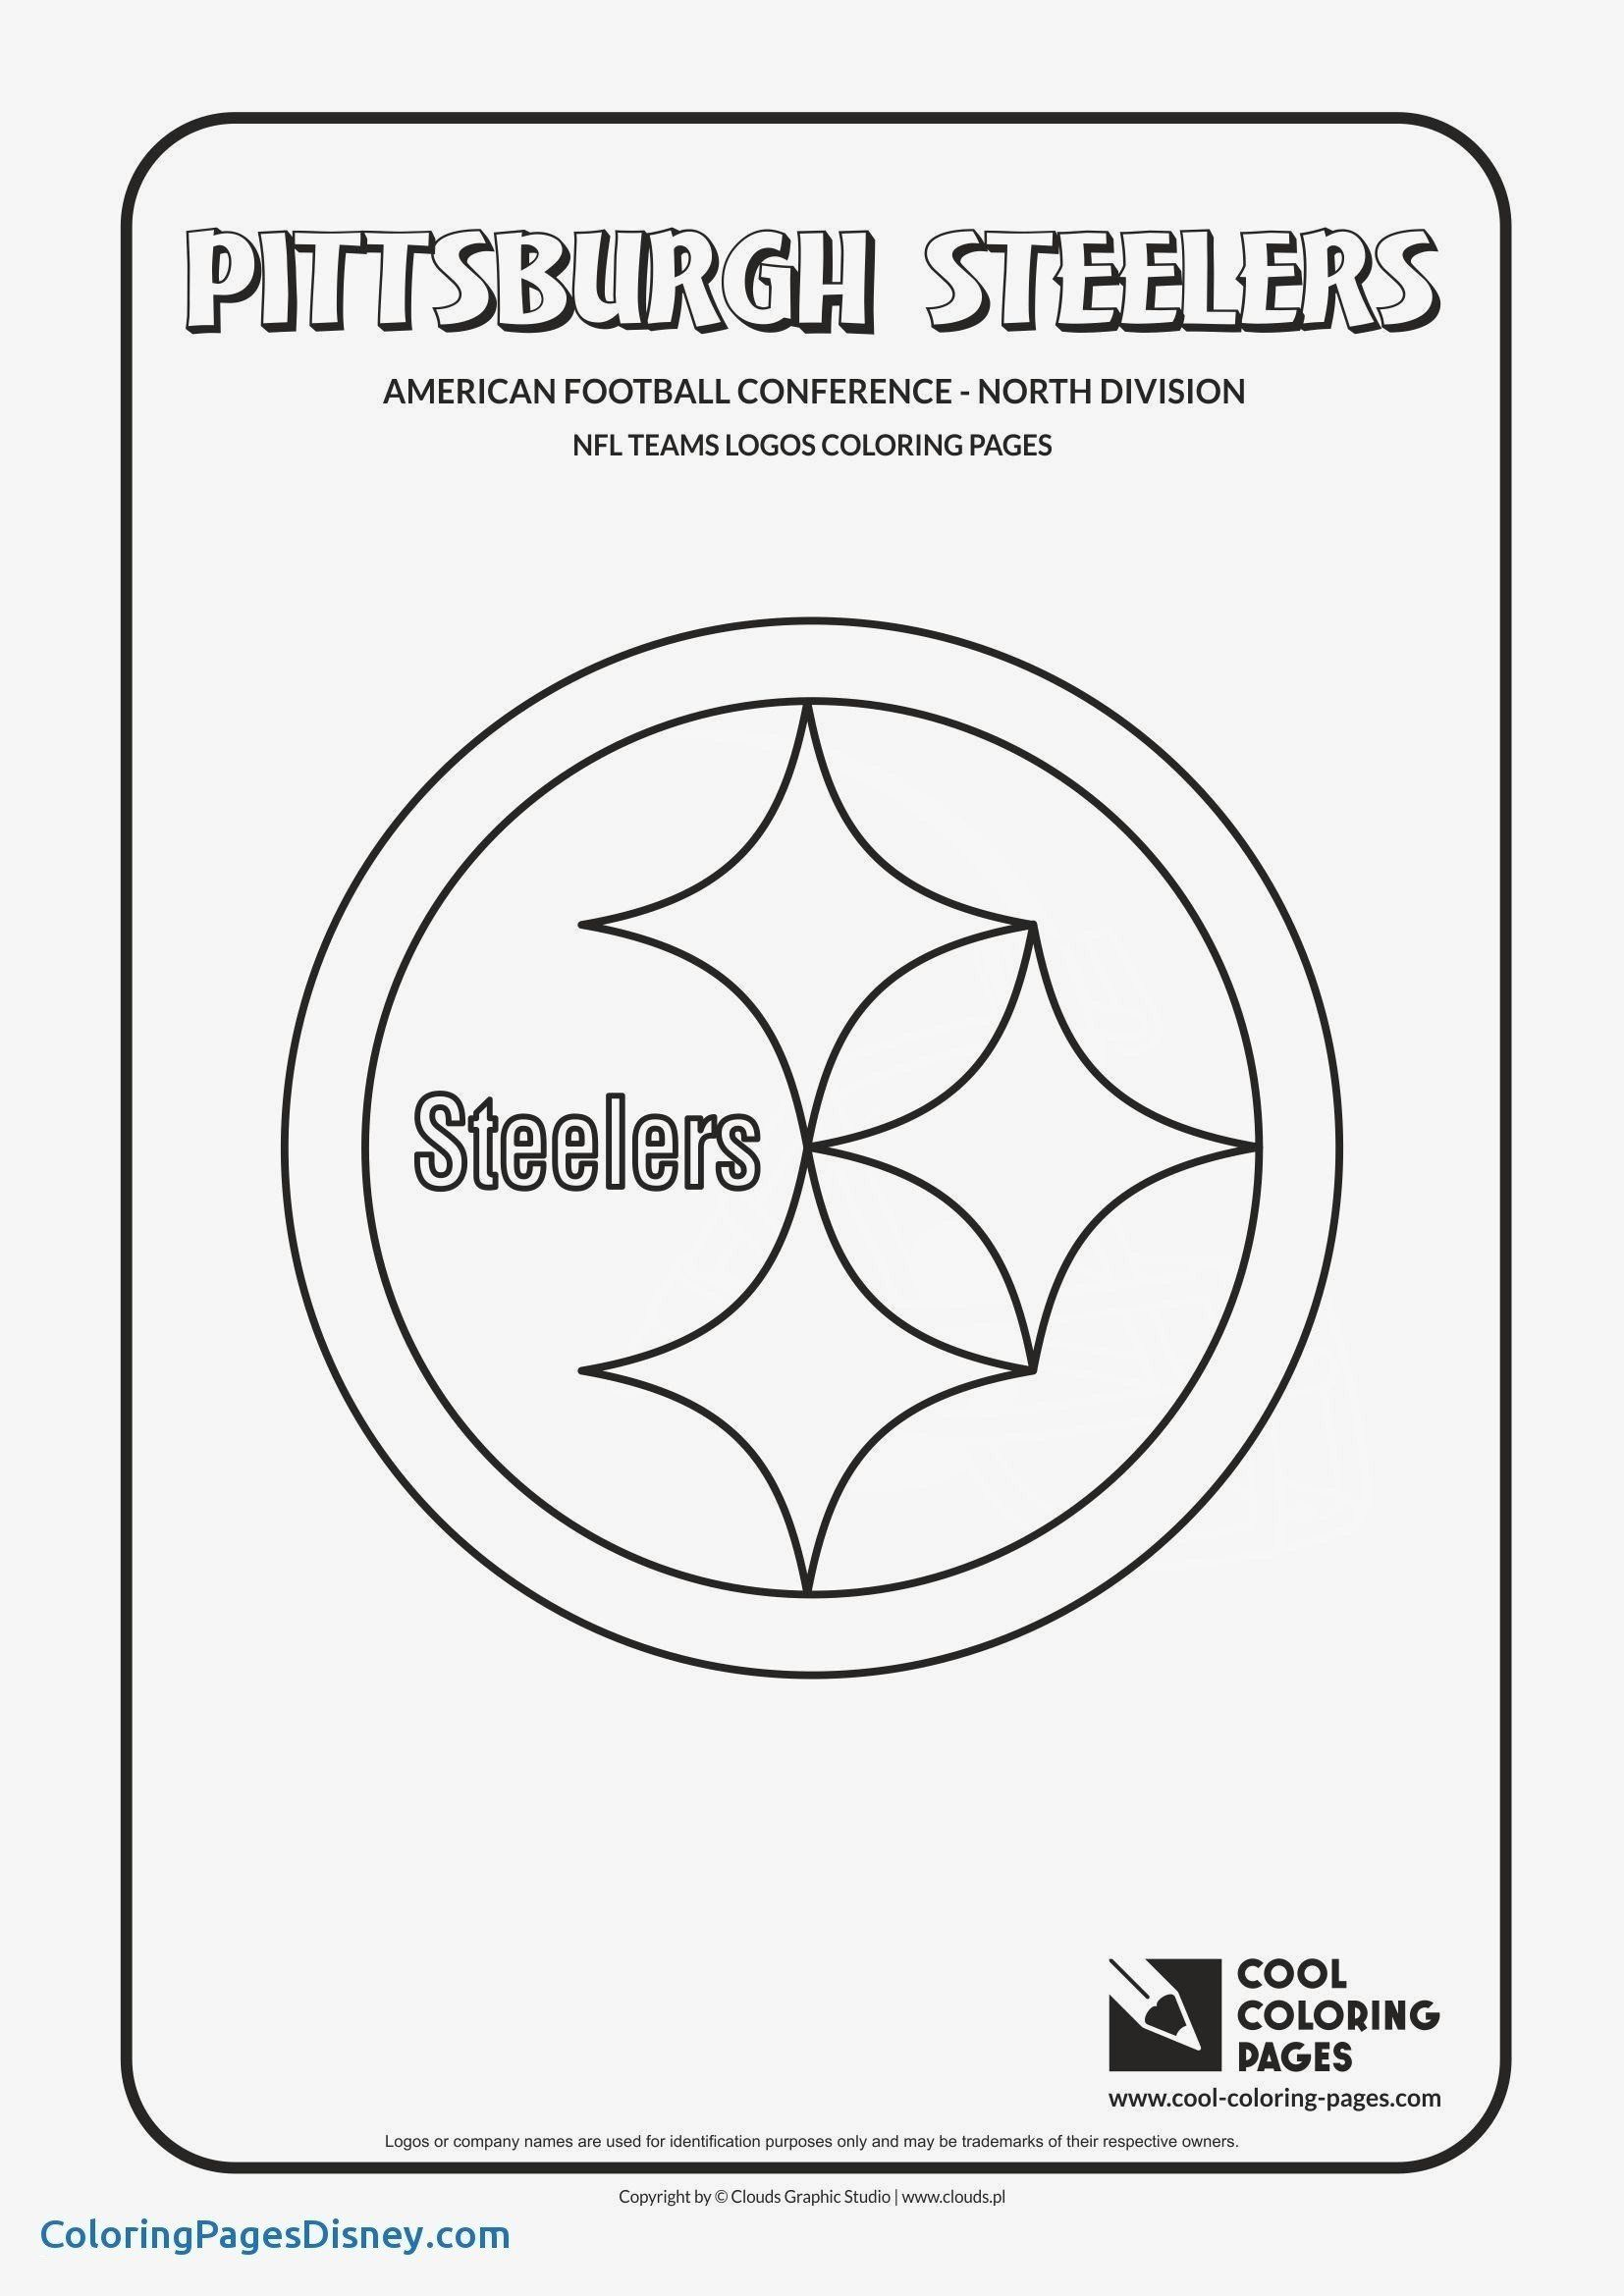 49 Ers Coloring Pages Pittsburgh Steelers Coloring Page